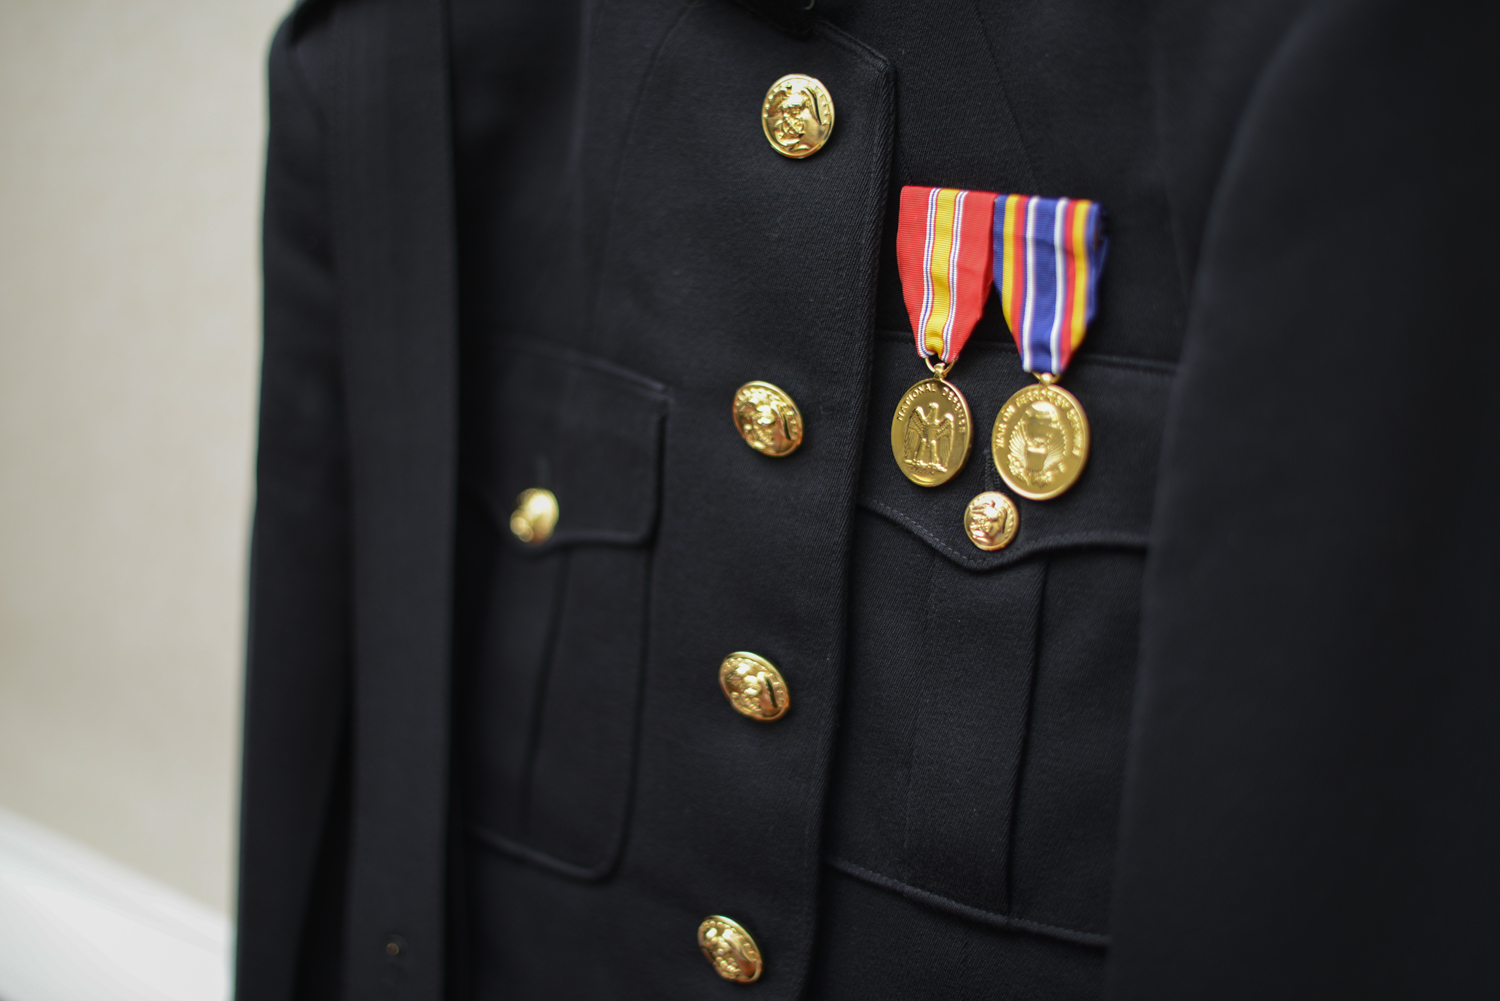 Decorated Navy active duty military |Maria Grace Photography